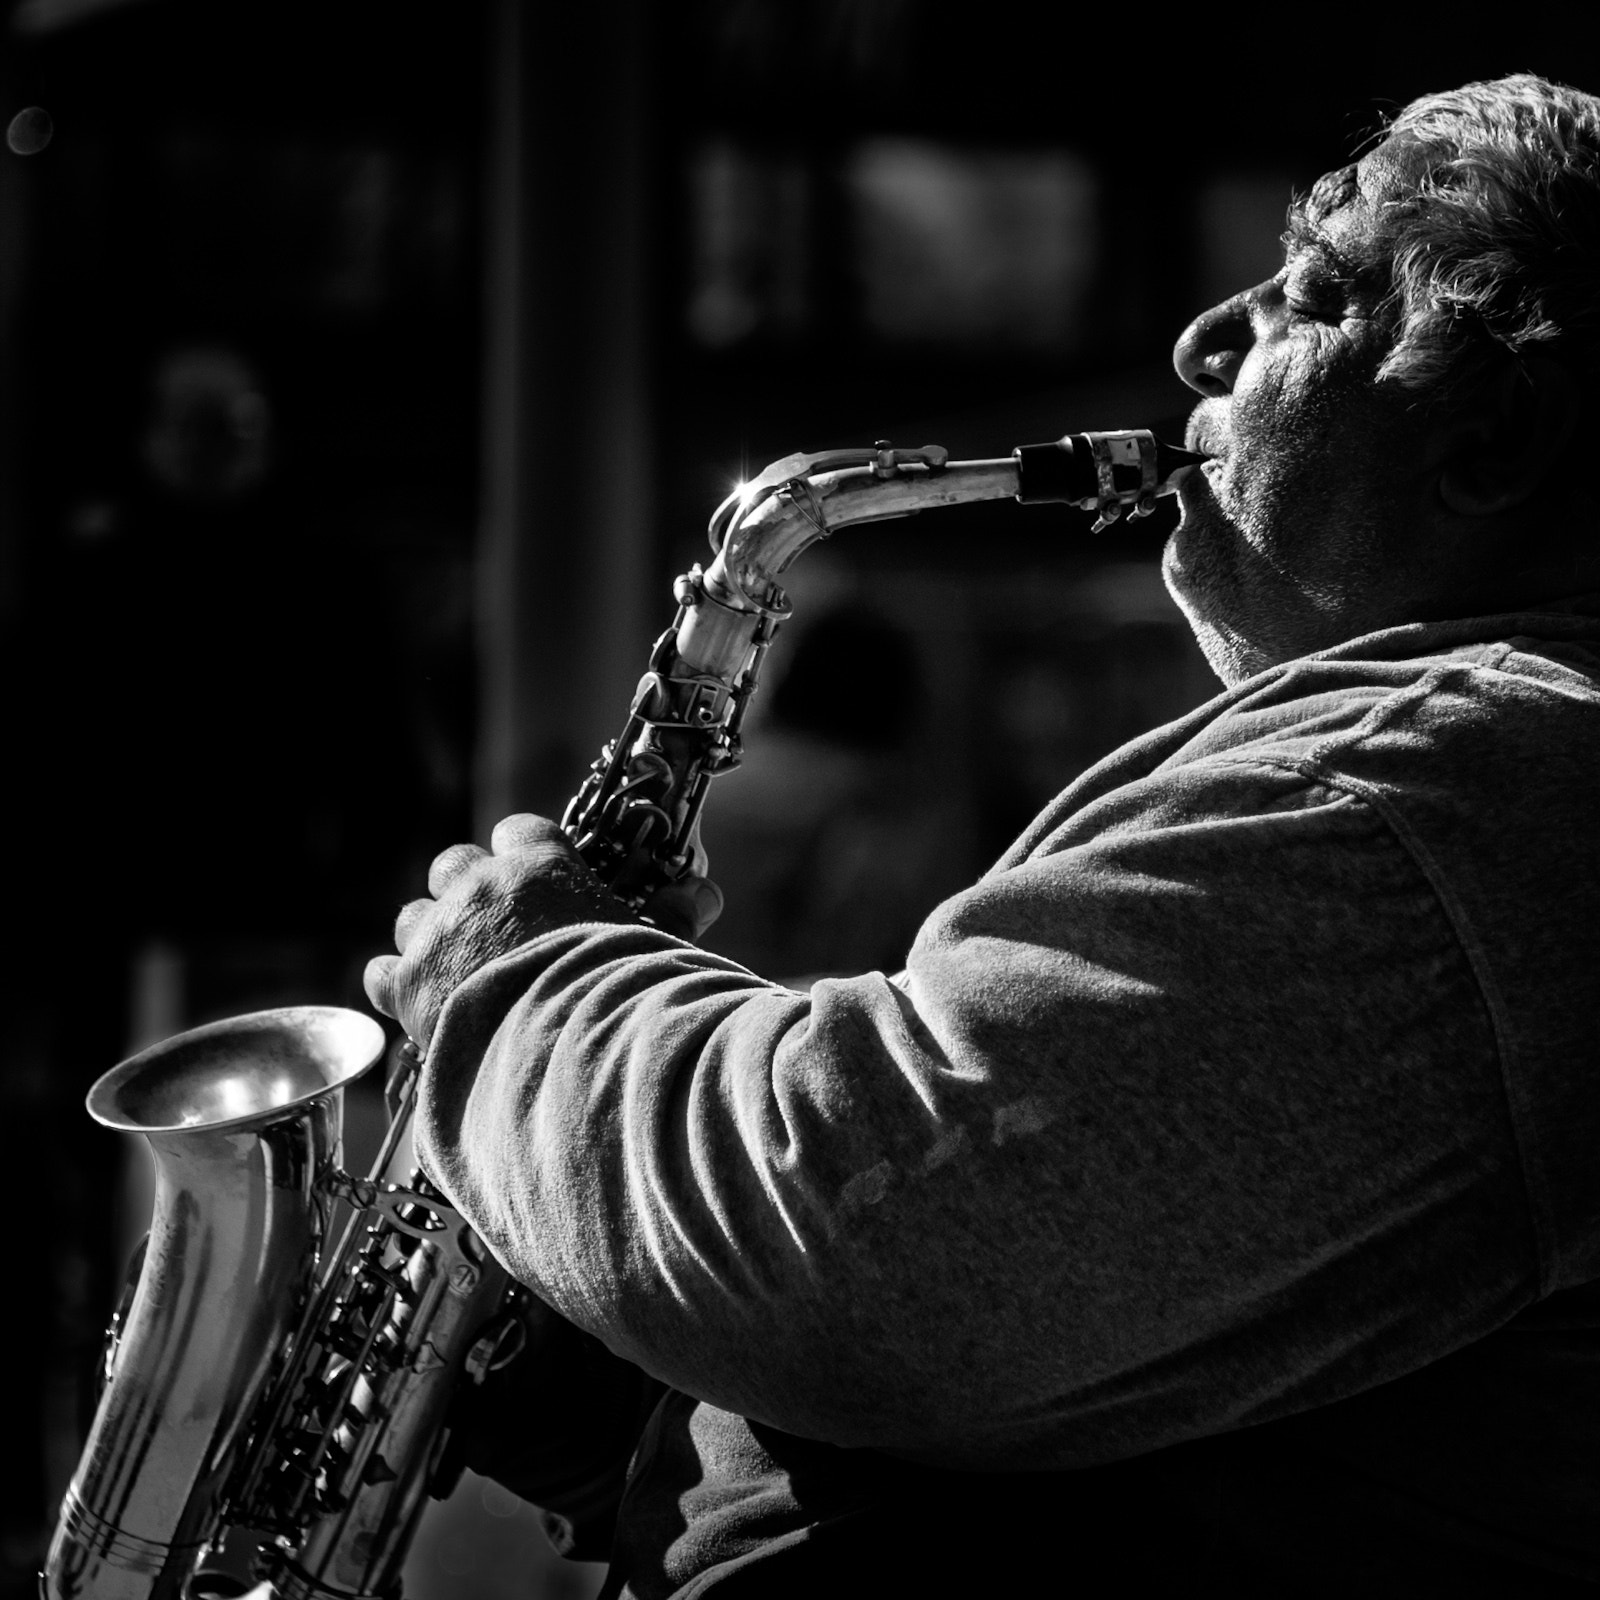 Photograph Sax Player by Tormod Raen on 500px